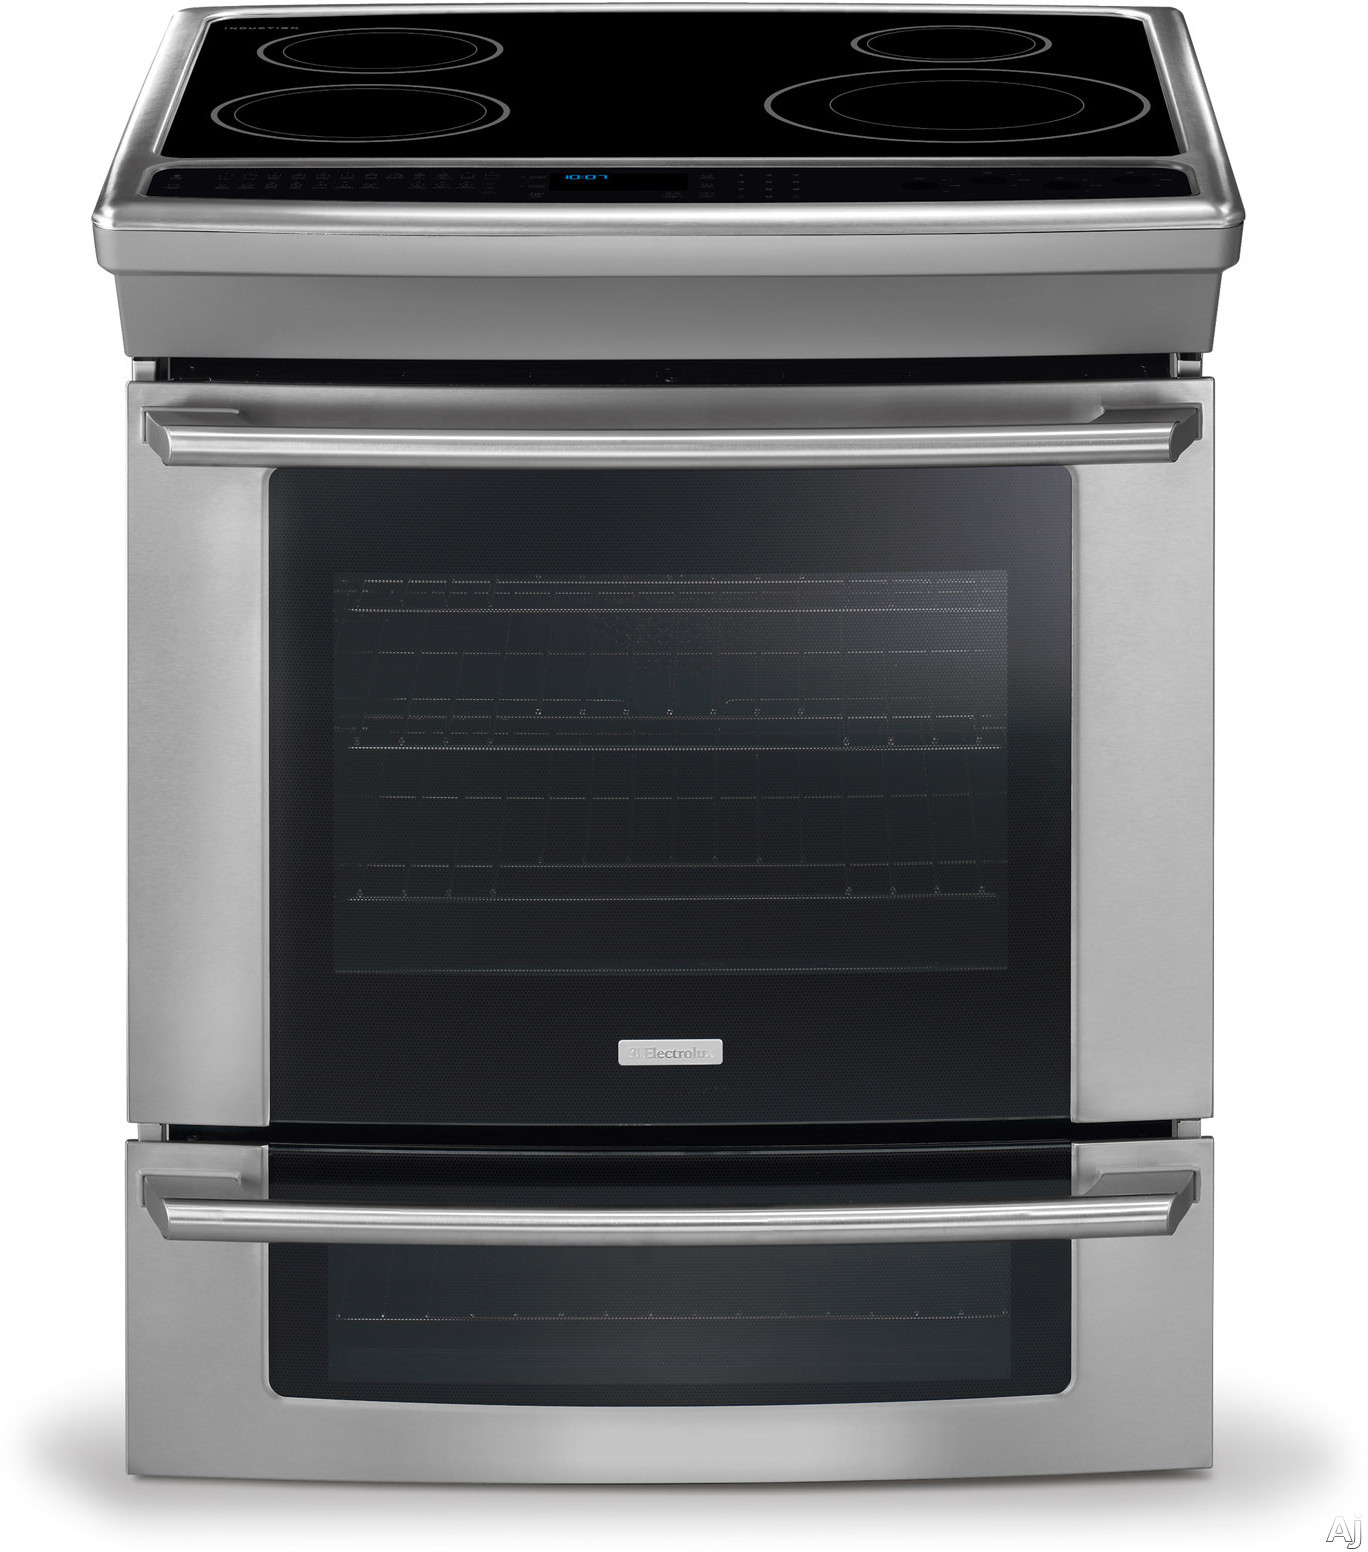 Range oven electrolux induction double oven range - Electrolux ehl7640fok table induction ...